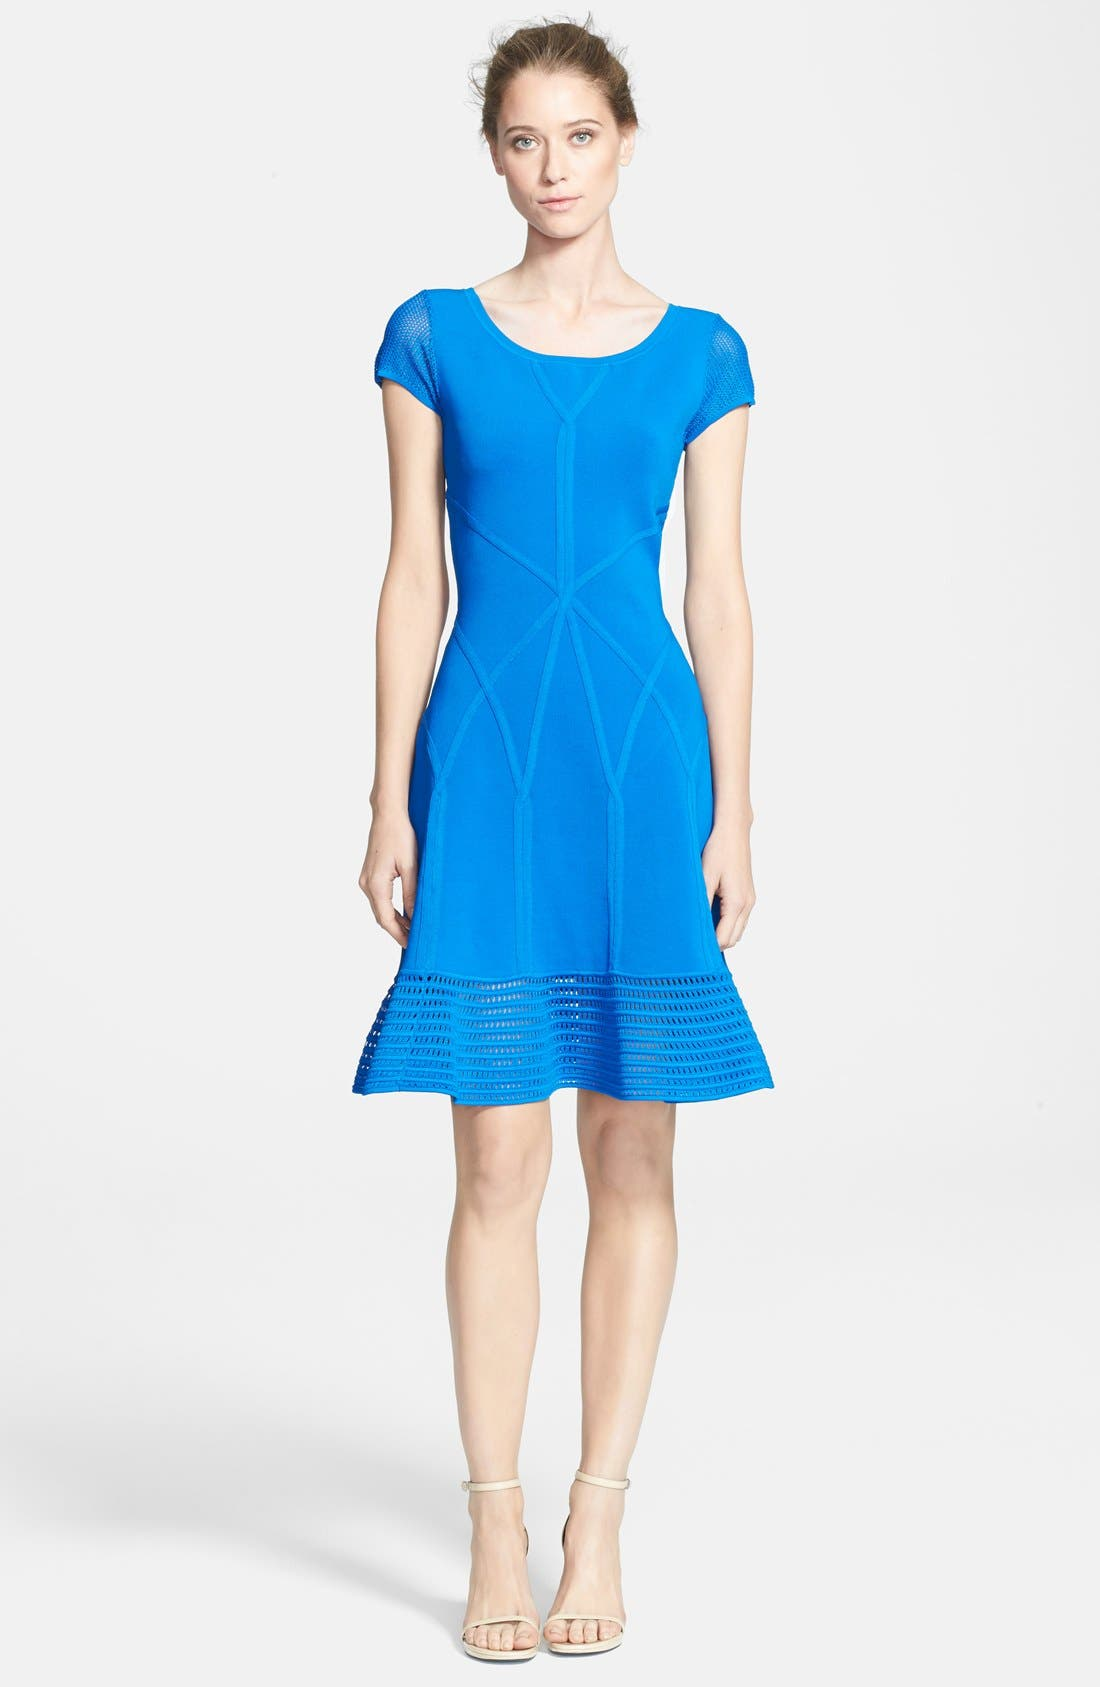 Main Image - Diane von Furstenberg 'St. Petersburg' Knit A-Line Dress